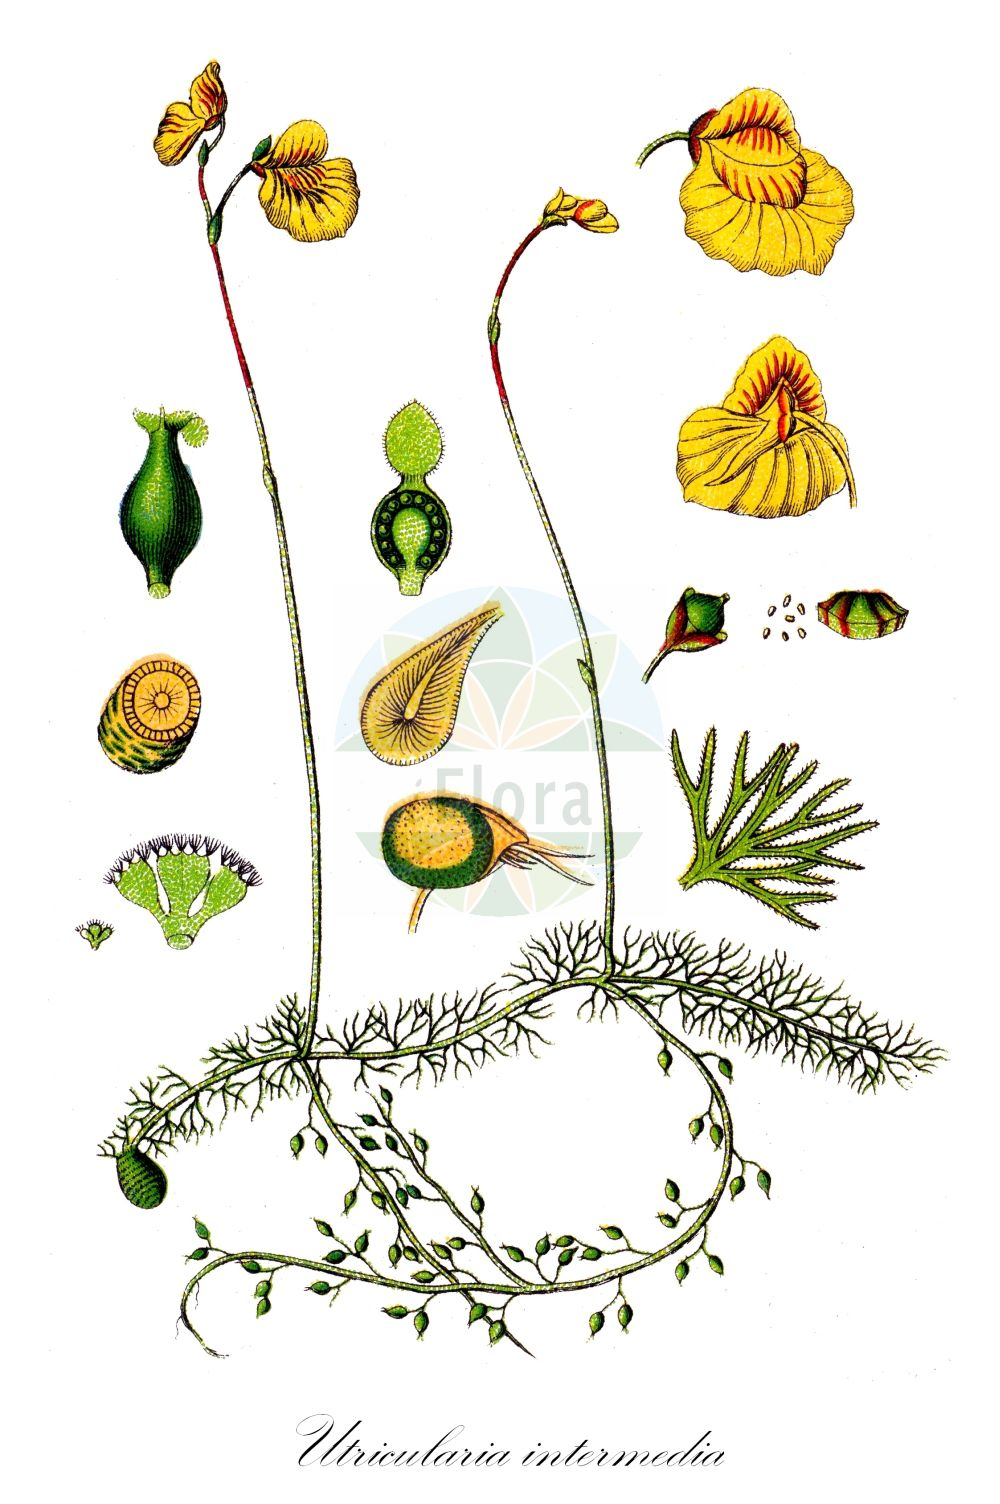 Historische Abbildung von Utricularia intermedia (Mittlerer Wasserschlauch - Intermediate Bladderwort). Das Bild zeigt Blatt, Bluete, Frucht und Same. ---- Historical Drawing of Utricularia intermedia (Mittlerer Wasserschlauch - Intermediate Bladderwort).The image is showing leaf, flower, fruit and seed.(Utricularia intermedia,Mittlerer Wasserschlauch,Intermediate Bladderwort,Flatleaf Bladderwort,Mountain Bladderwort,Utricularia,Wasserschlauch,Bladderwort,Lentibulariaceae,Wasserschlauchgewaechse,Bladderwort family,Blatt,Bluete,Frucht,Same,leaf,flower,fruit,seed,Sturm (1796f))